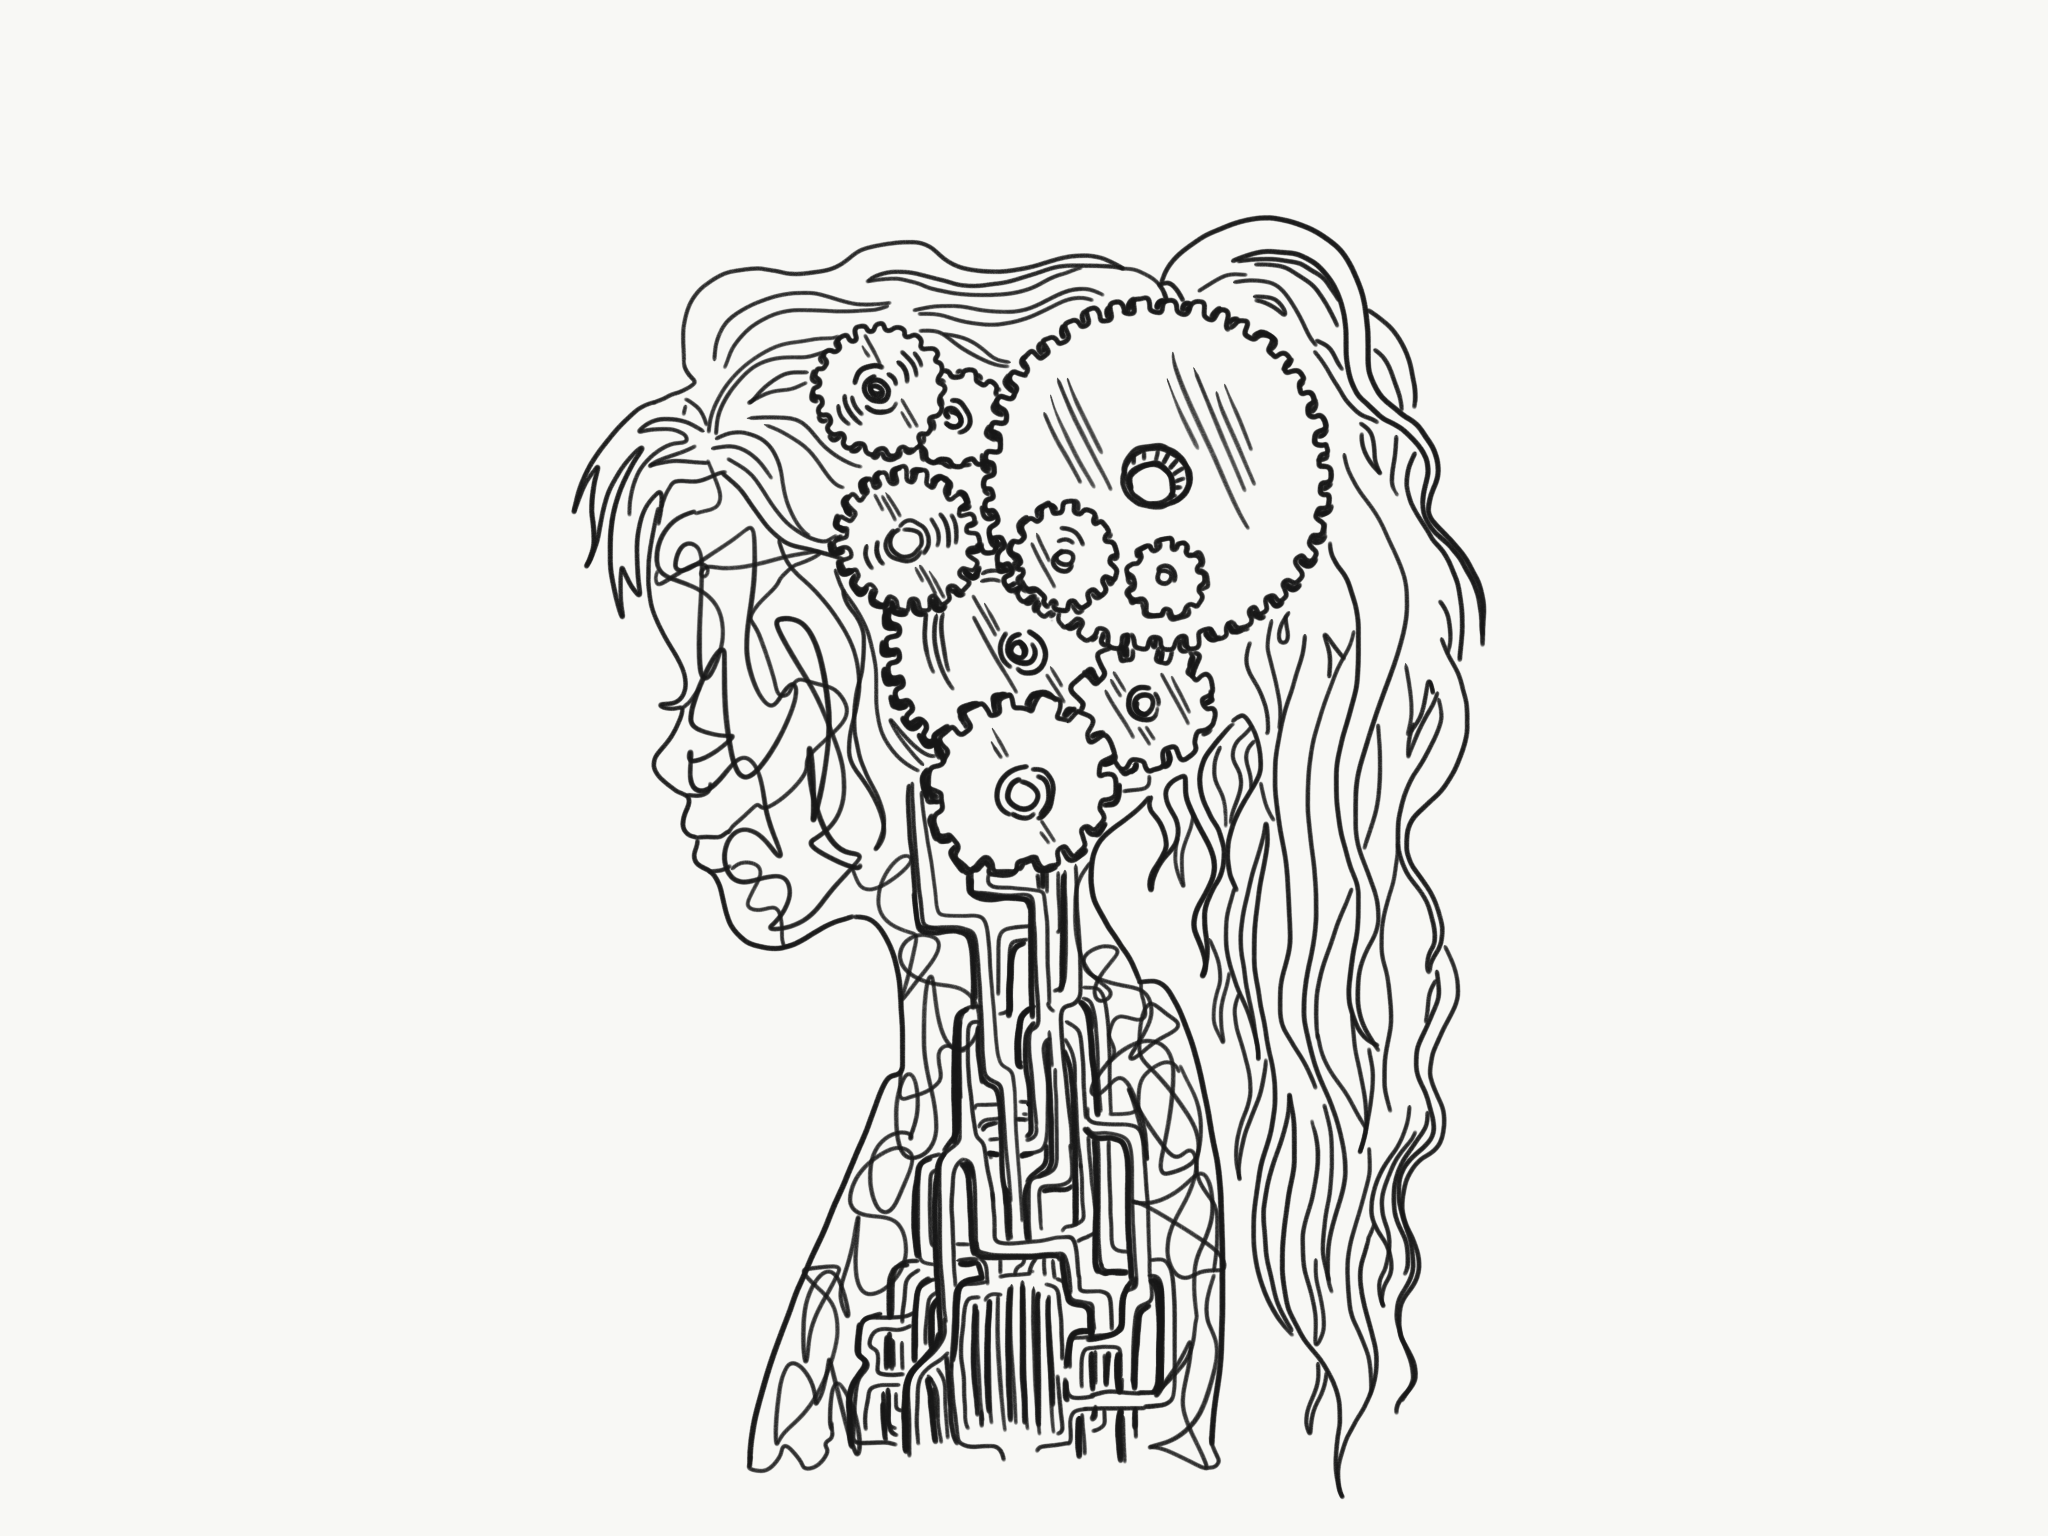 Illustration of a side-profile of a girl with gears where her brain is